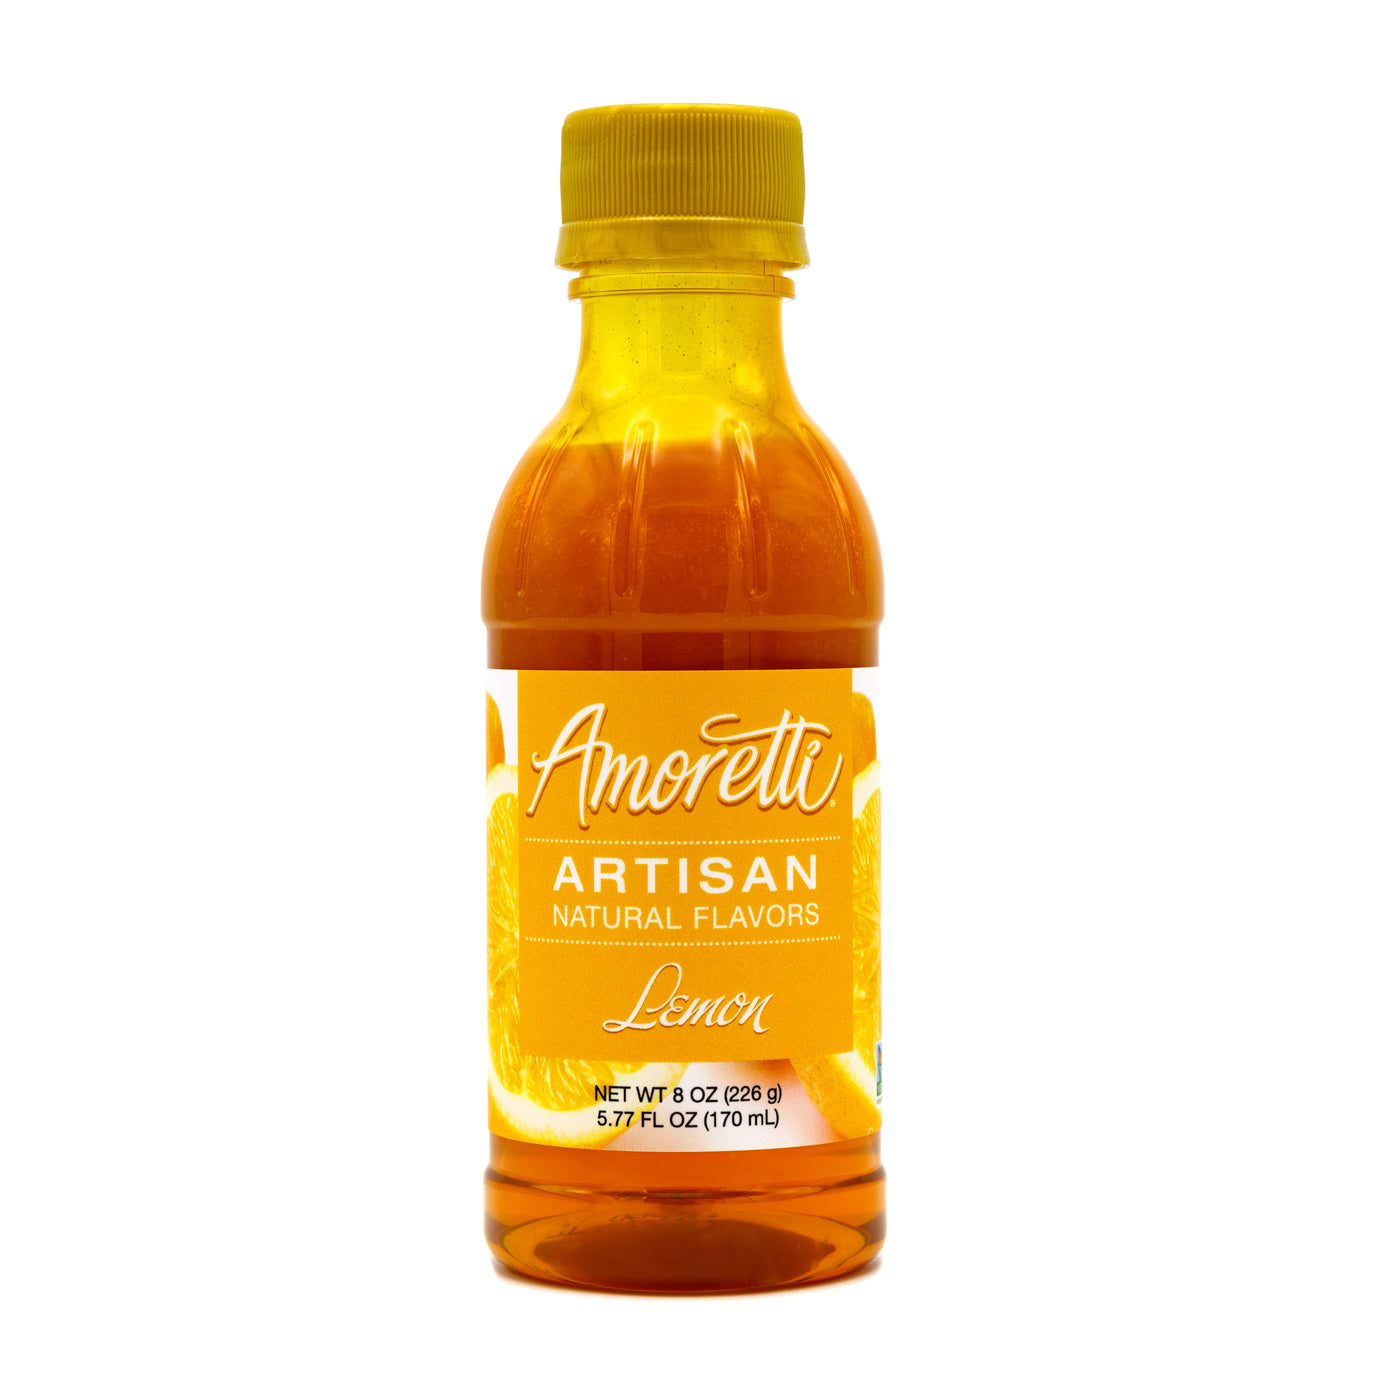 Amoretti's Natural Lemon Artisan is the best way to brighten up your recipes with a bold citrus flavor.